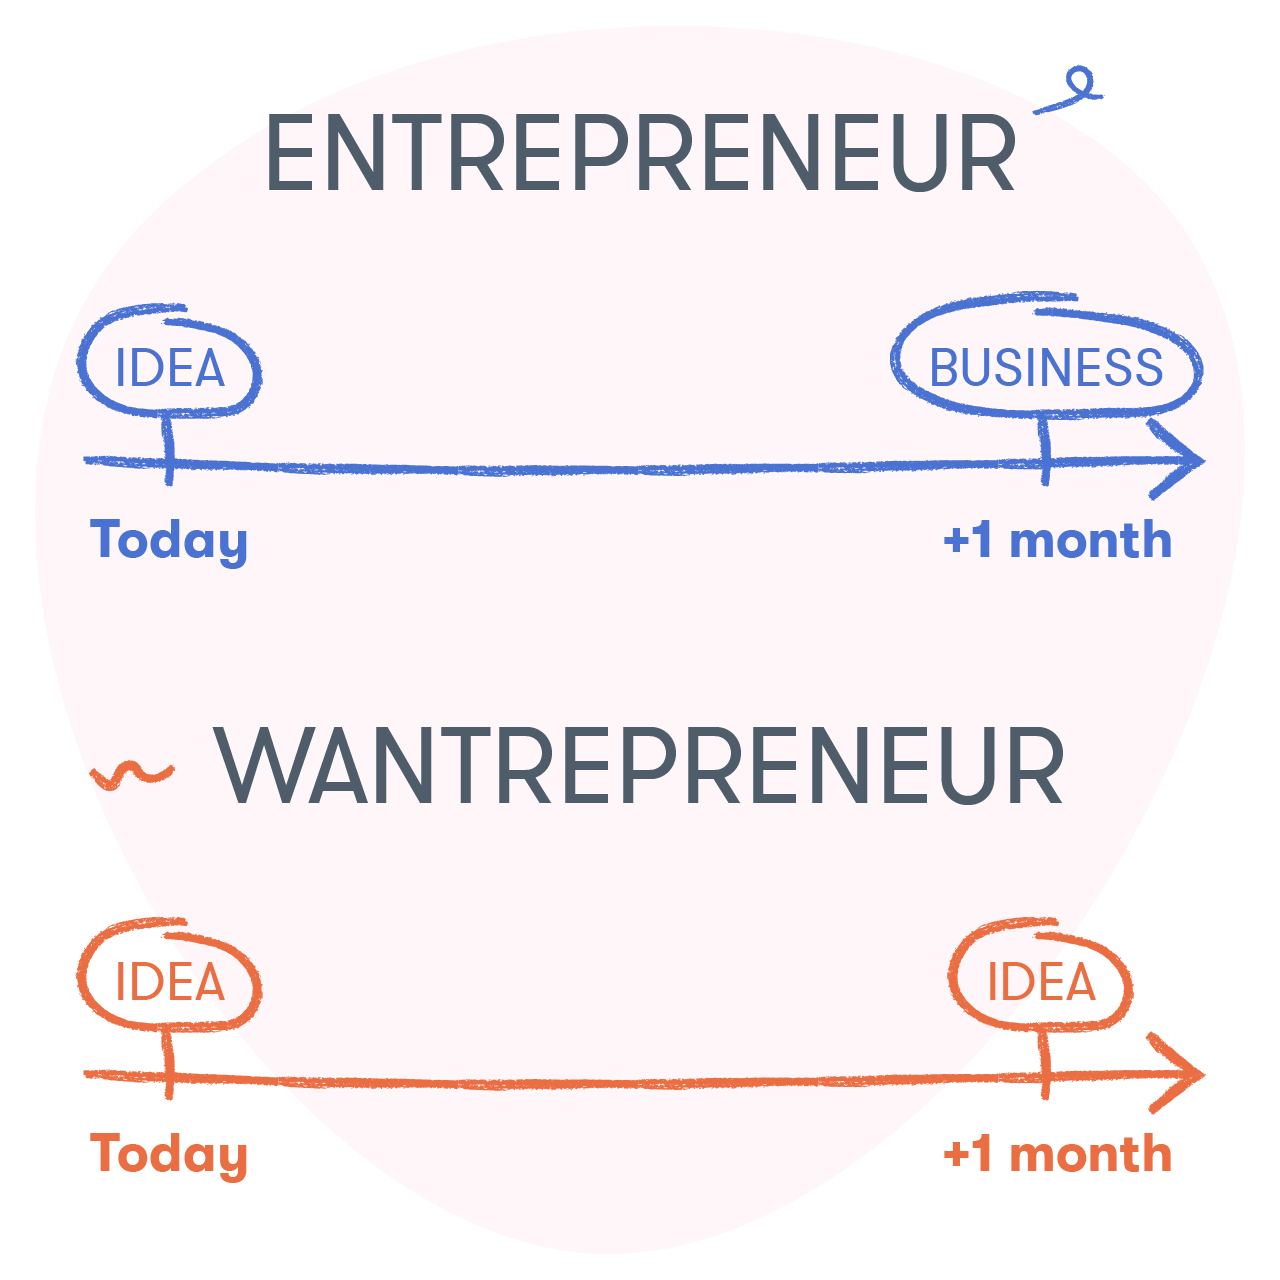 The difference between entrepreneurs and wantrepreneurs